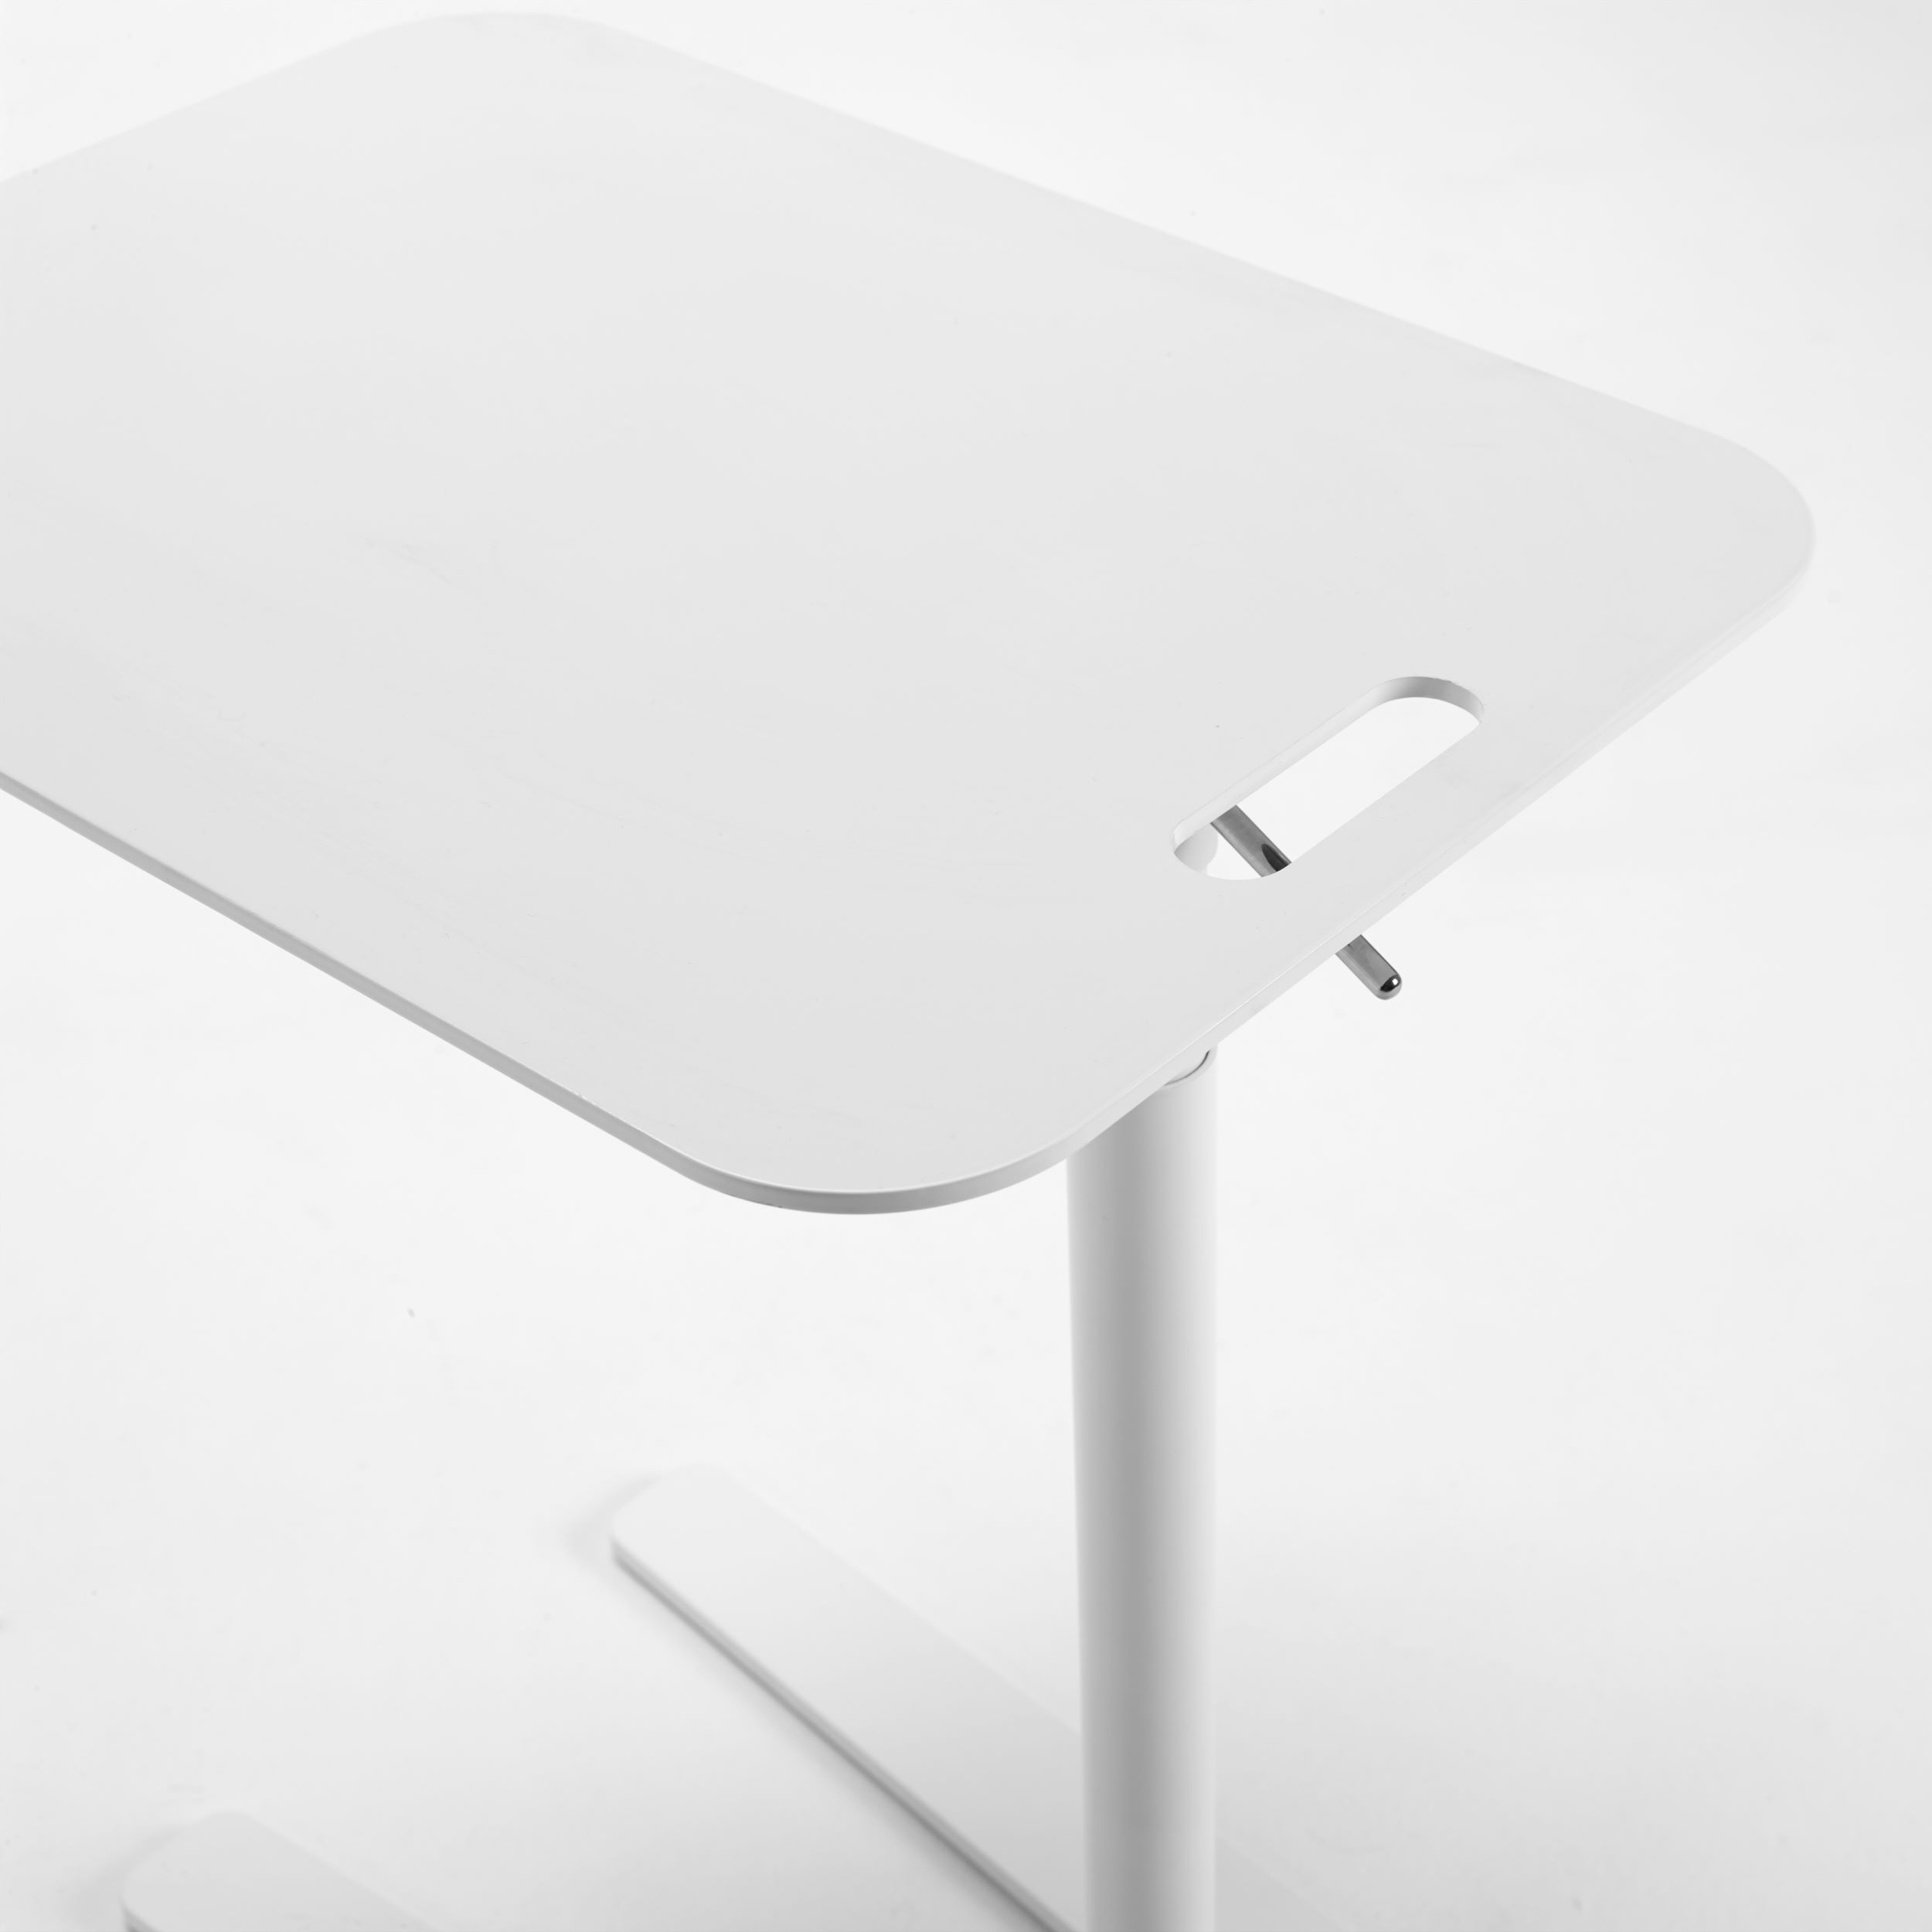 OFFECCT/toolテーブル